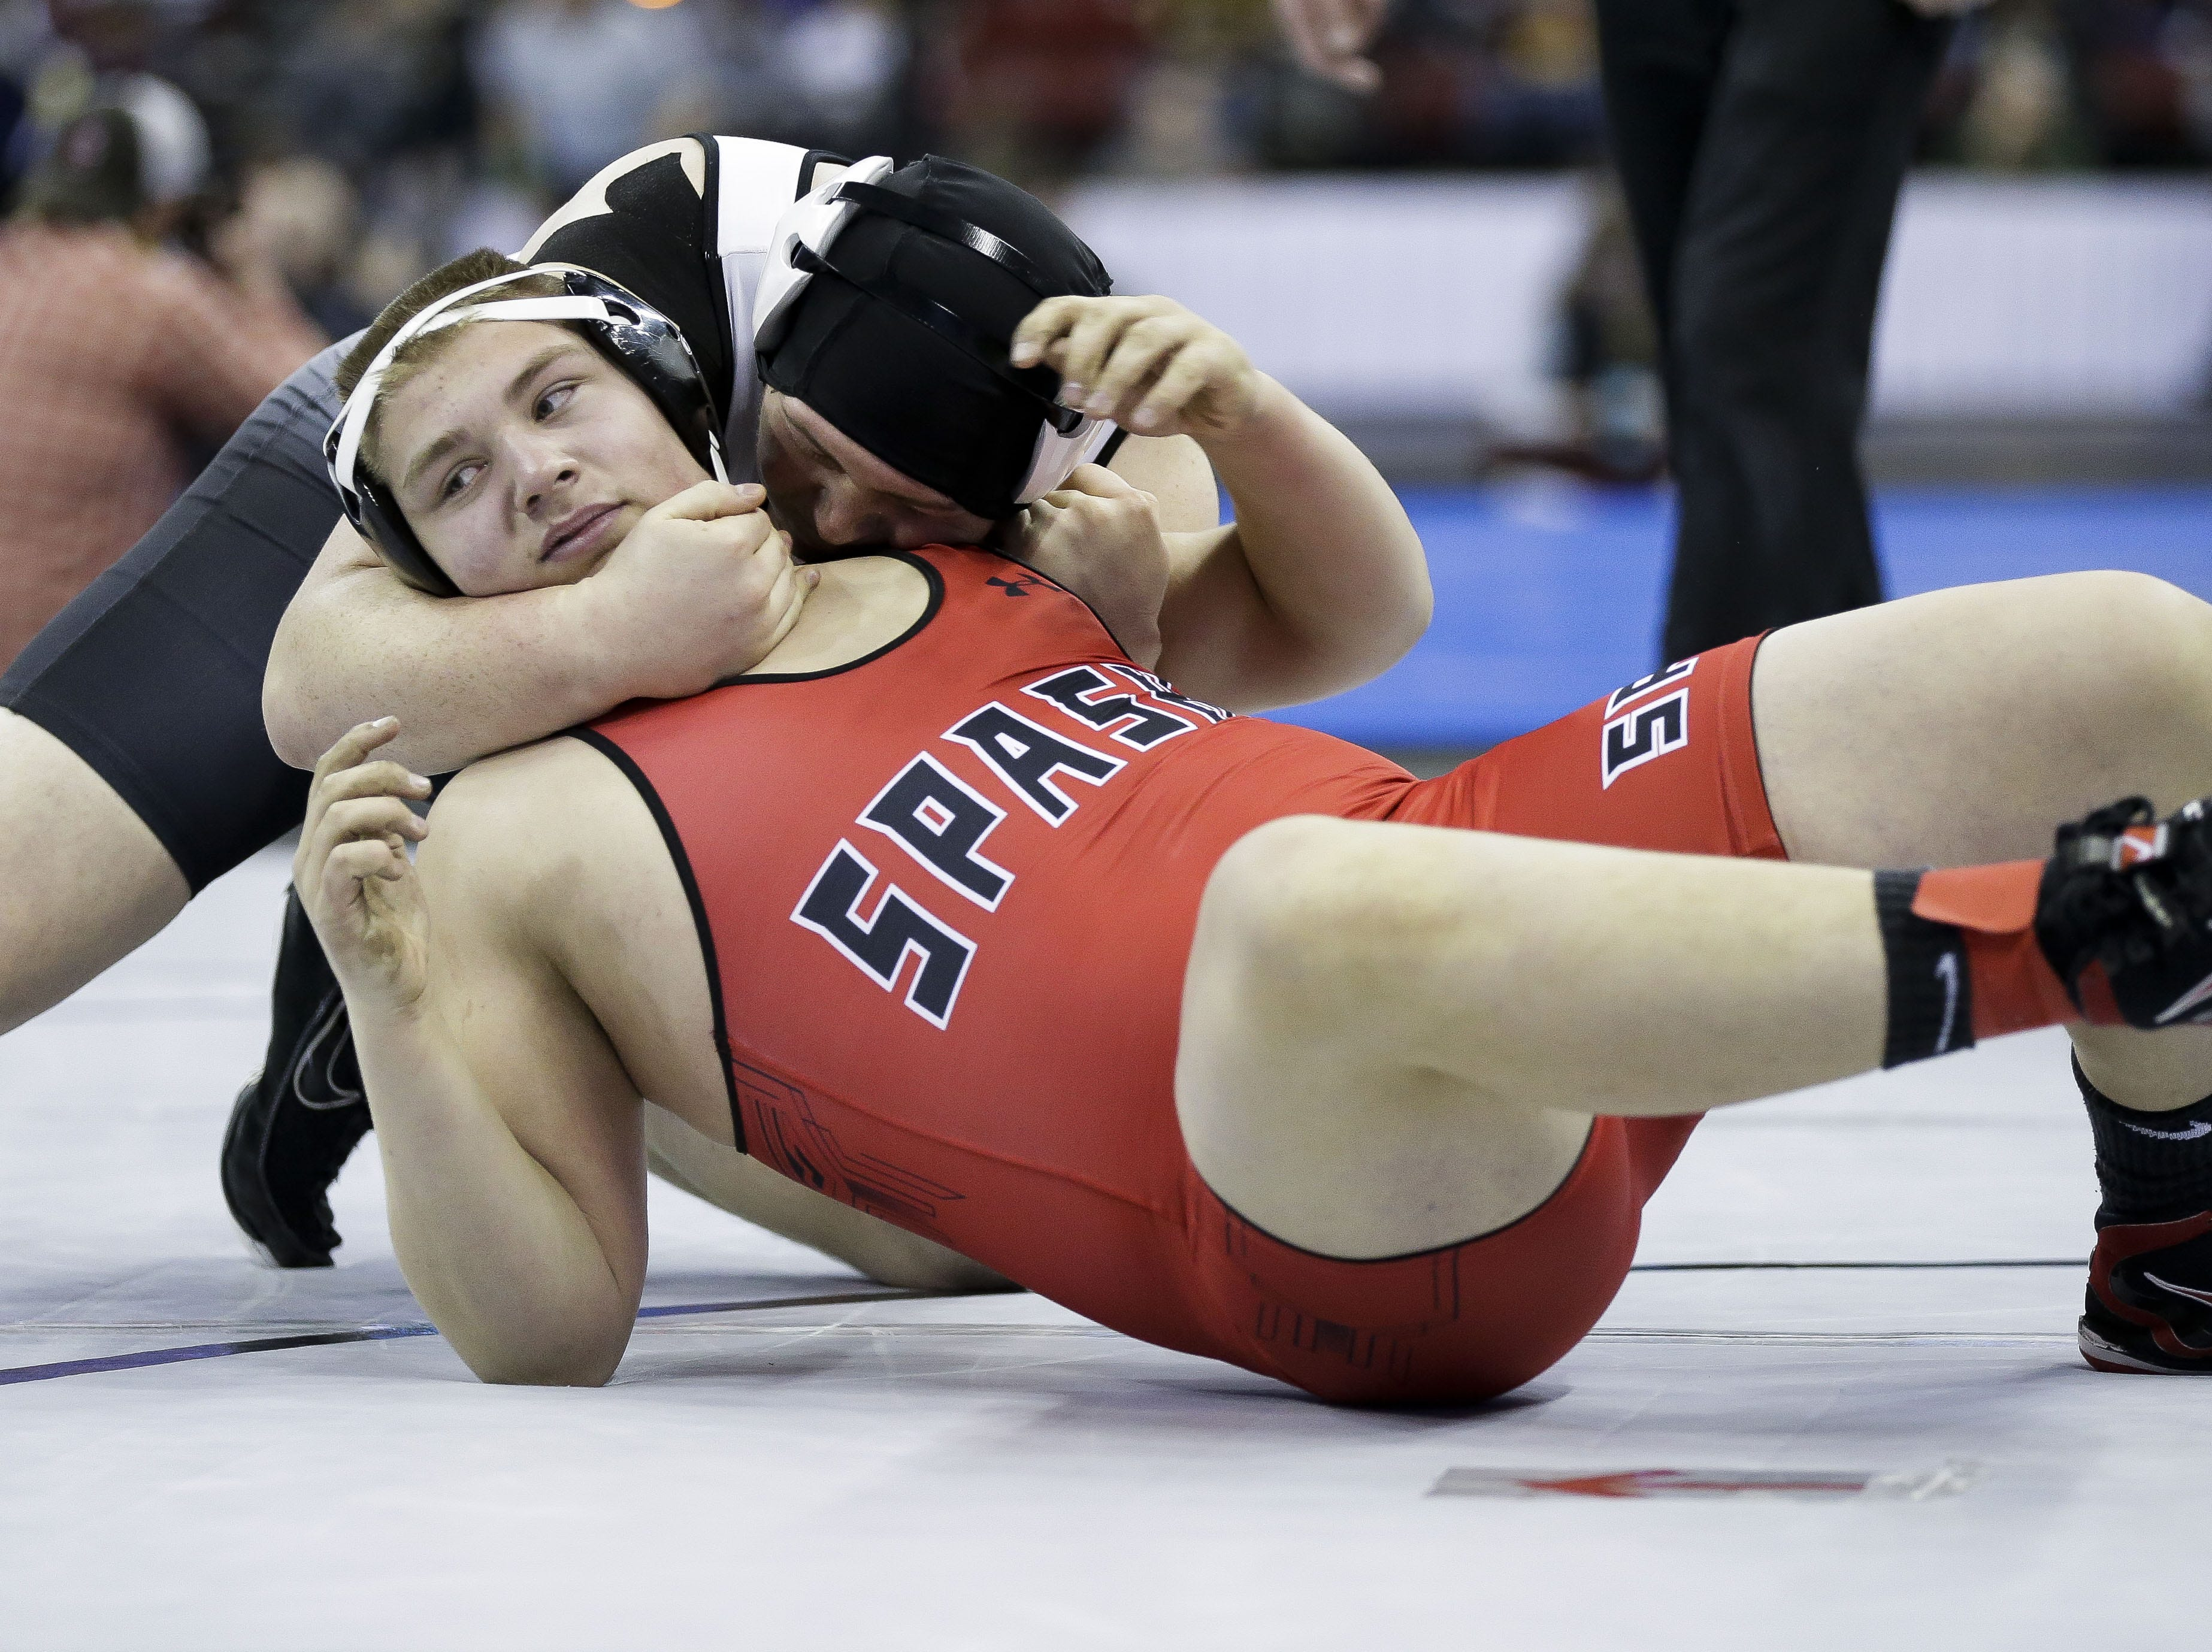 SPASH's Jaren Rohde wrestles against Burlington's Wyatt Hayes in a Division 1 220-pound preliminary match during the WIAA state wrestling tournament on Thursday, February 21, 2019, at the Kohl Center in Madison, Wis. Tork Mason/USA TODAY NETWORK-Wisconsin